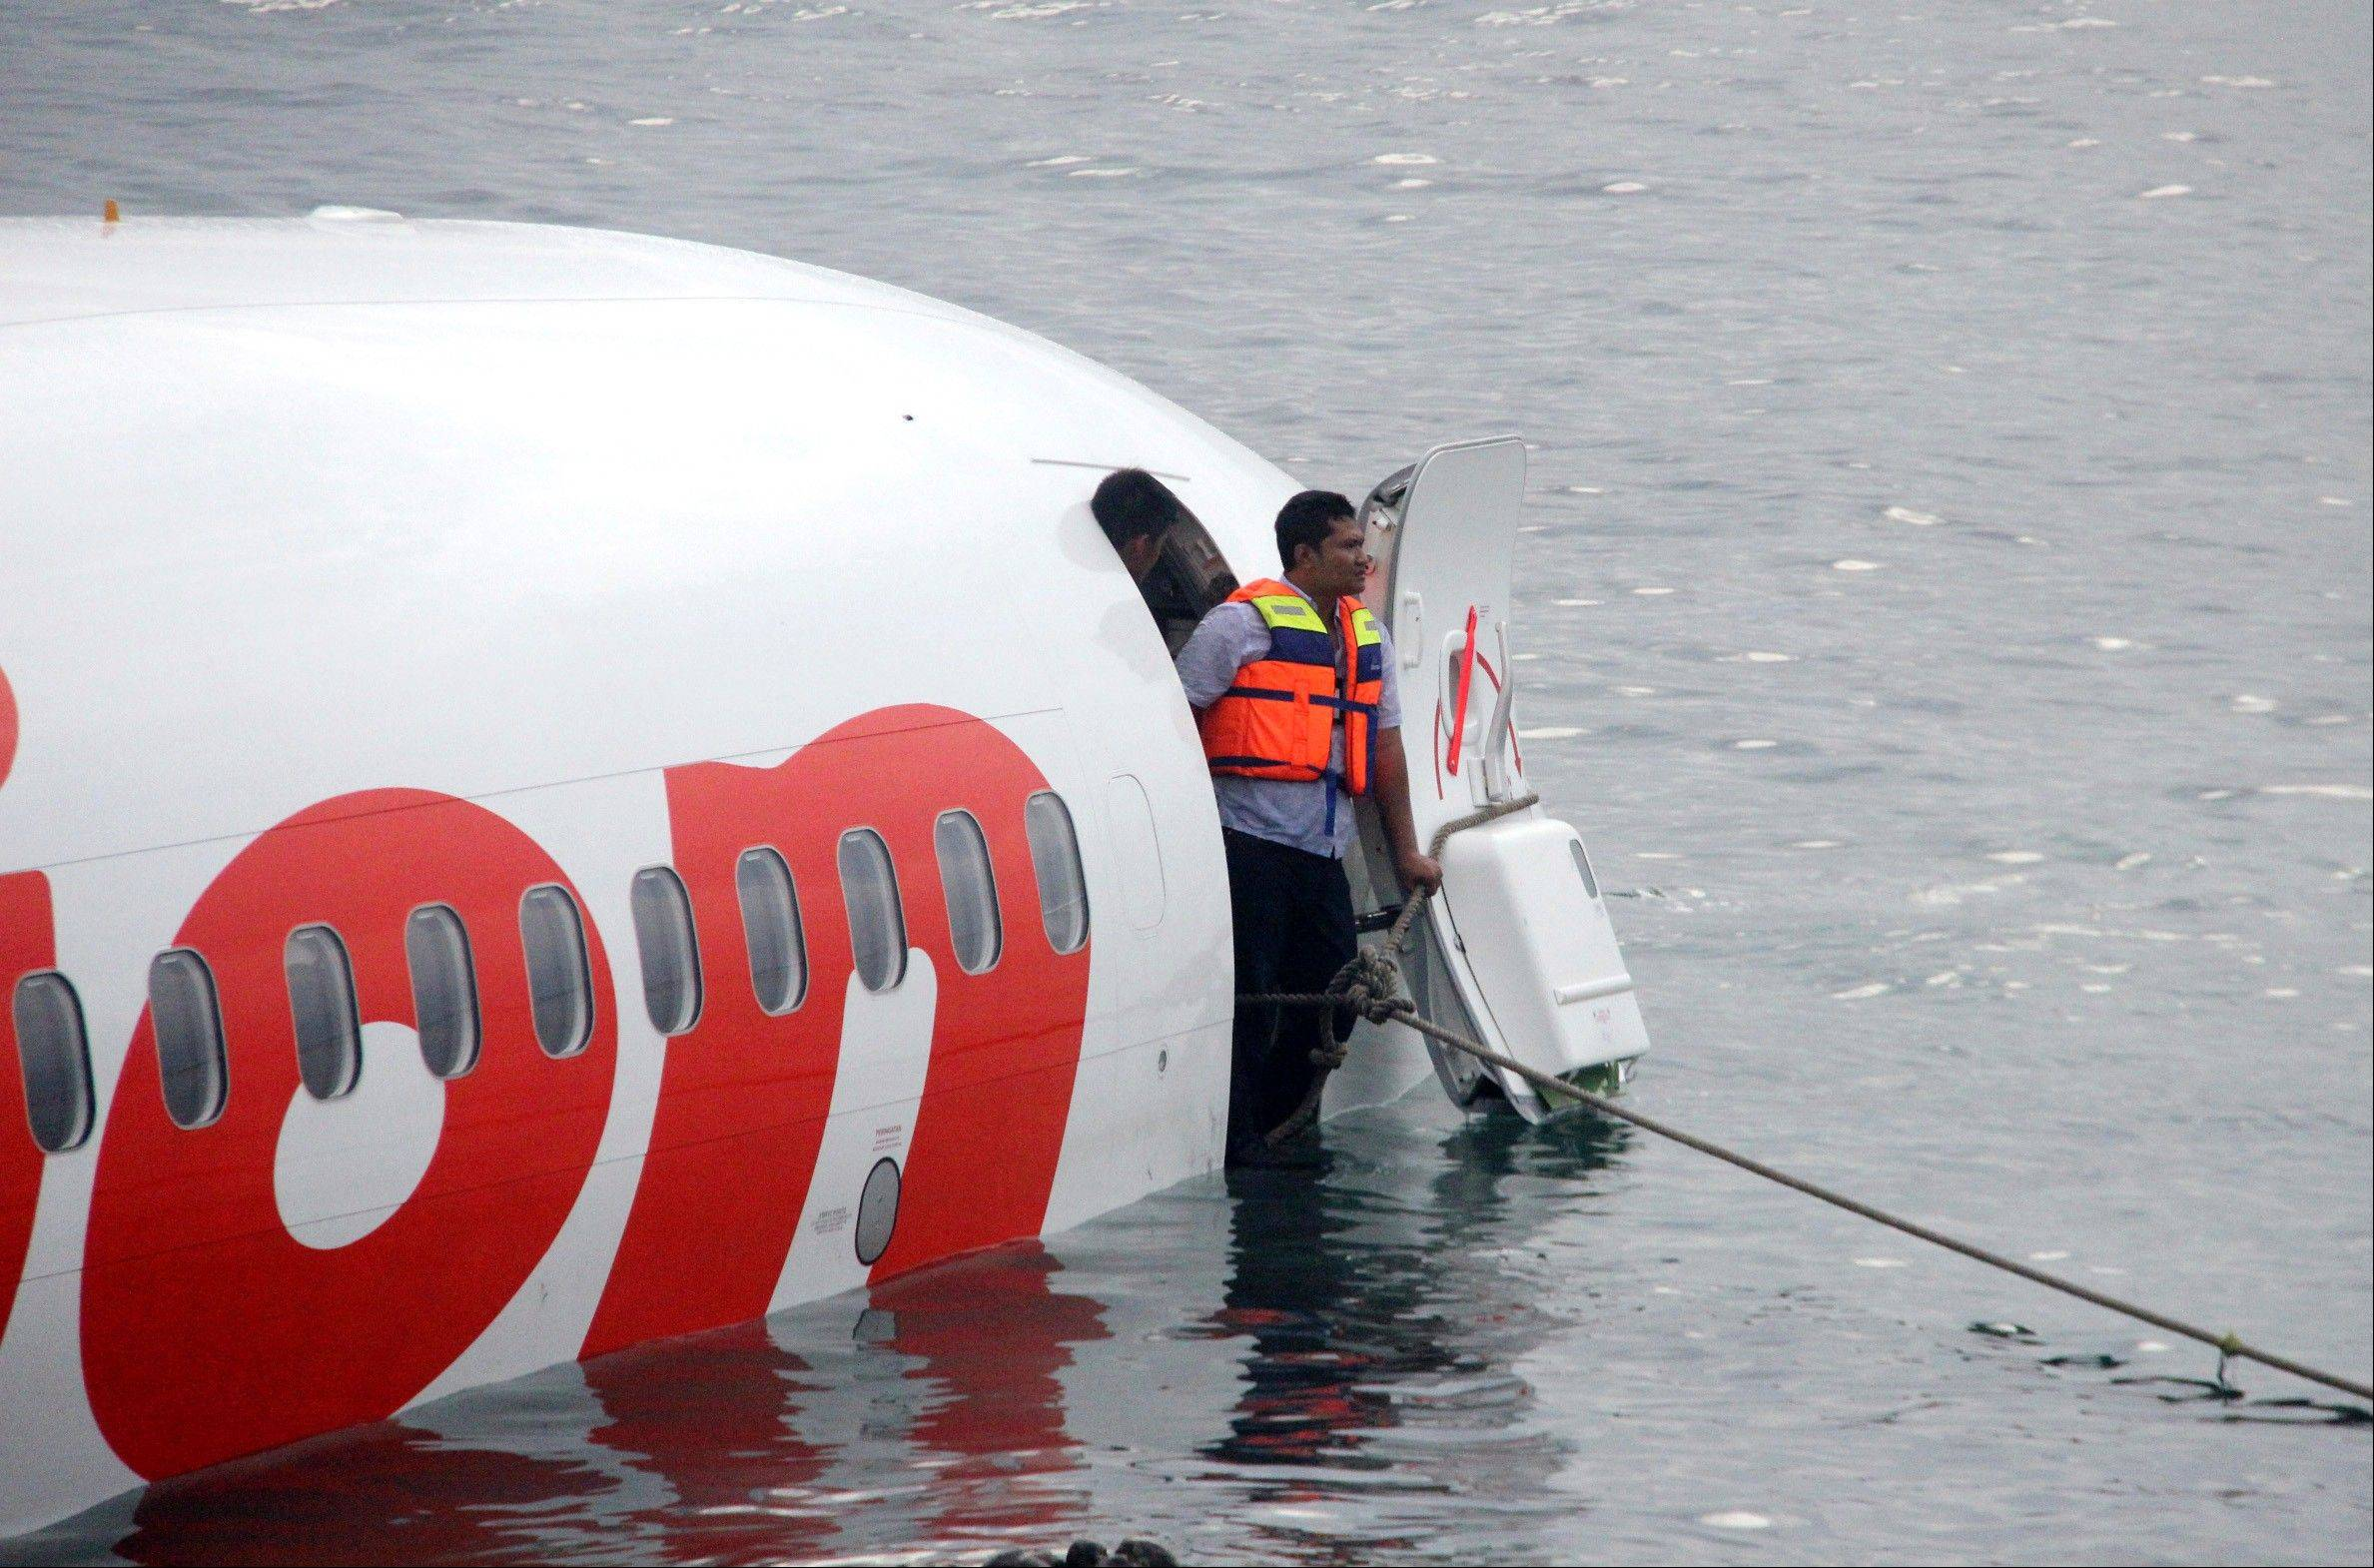 A rescue worker stands at the doorway of a crashed Lion Air plane on the water near the airport in Bali, Indonesia.